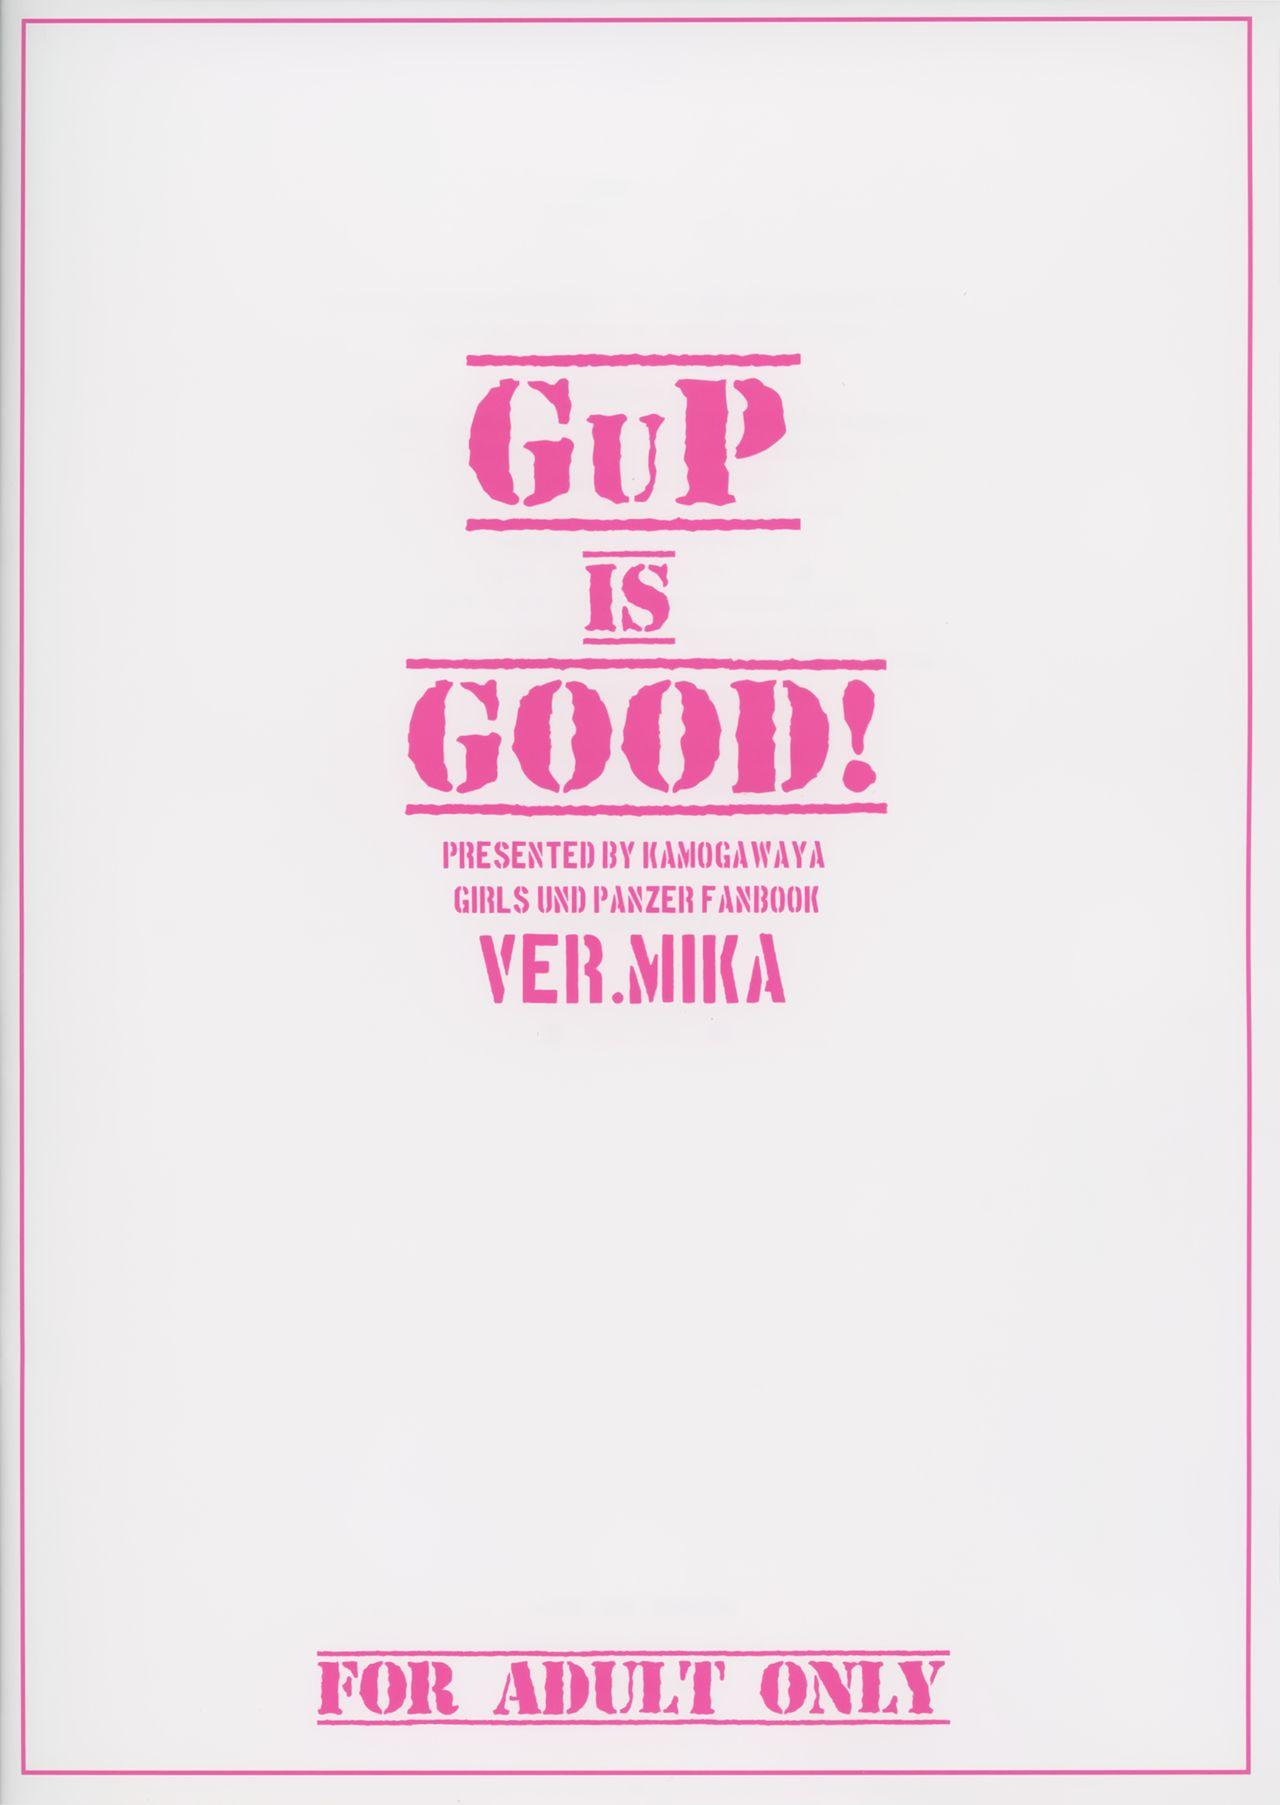 GuP is good! ver.MIKA 19